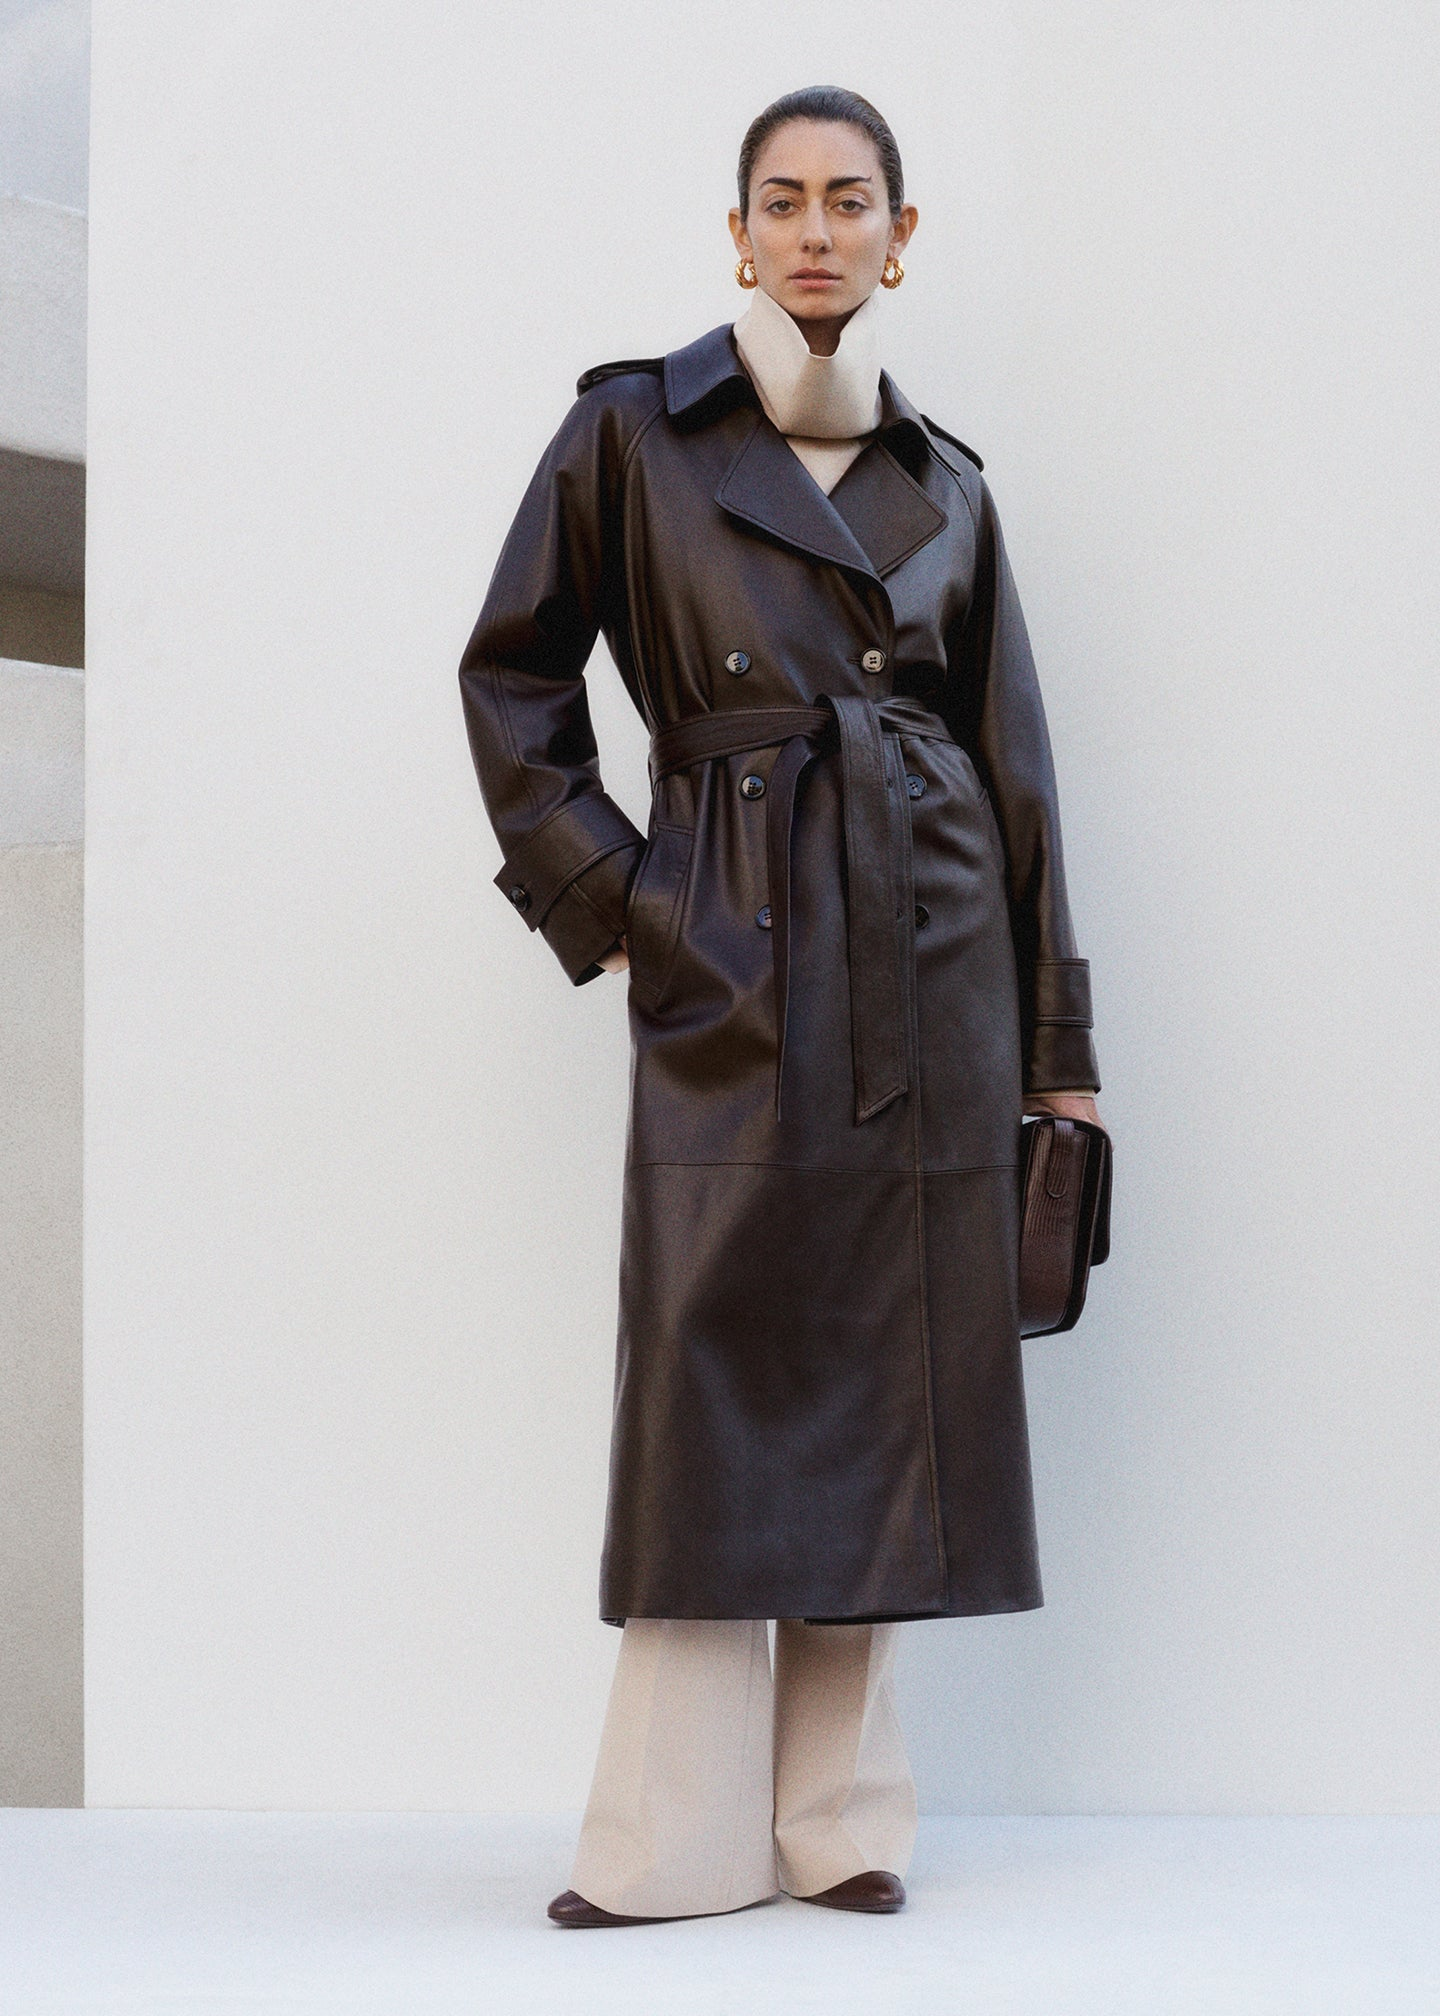 Trench Coat in Leather - Brown - CO